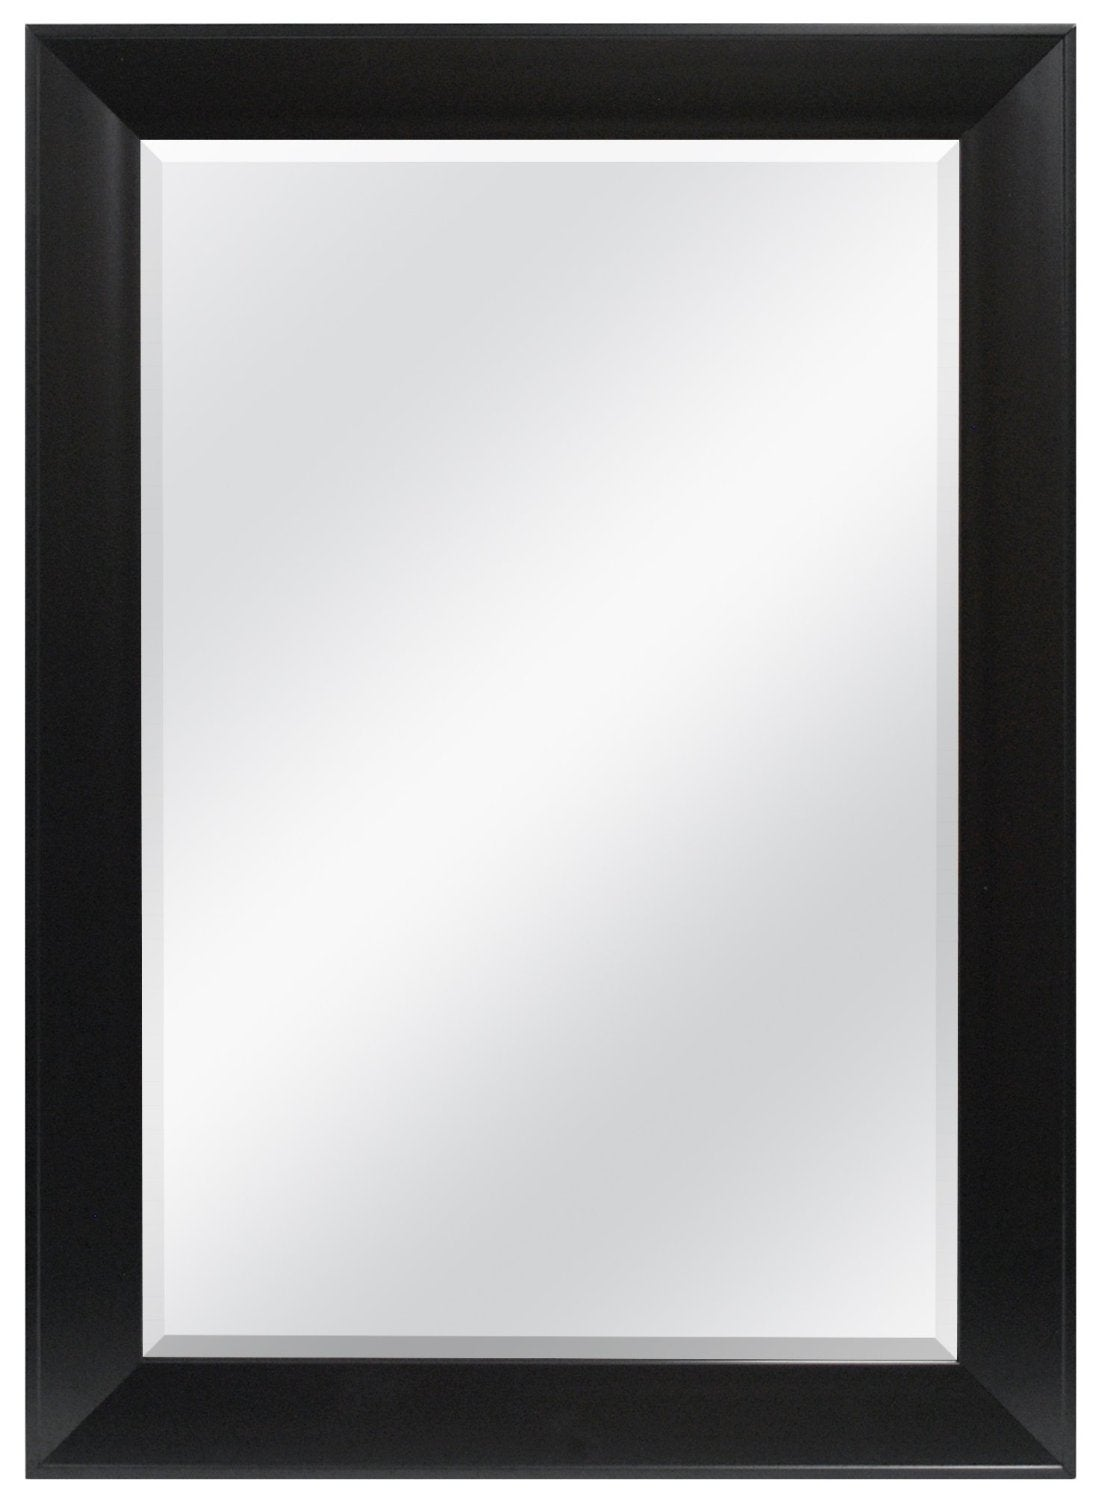 belvedere 32 x 24 inch black wall mirror